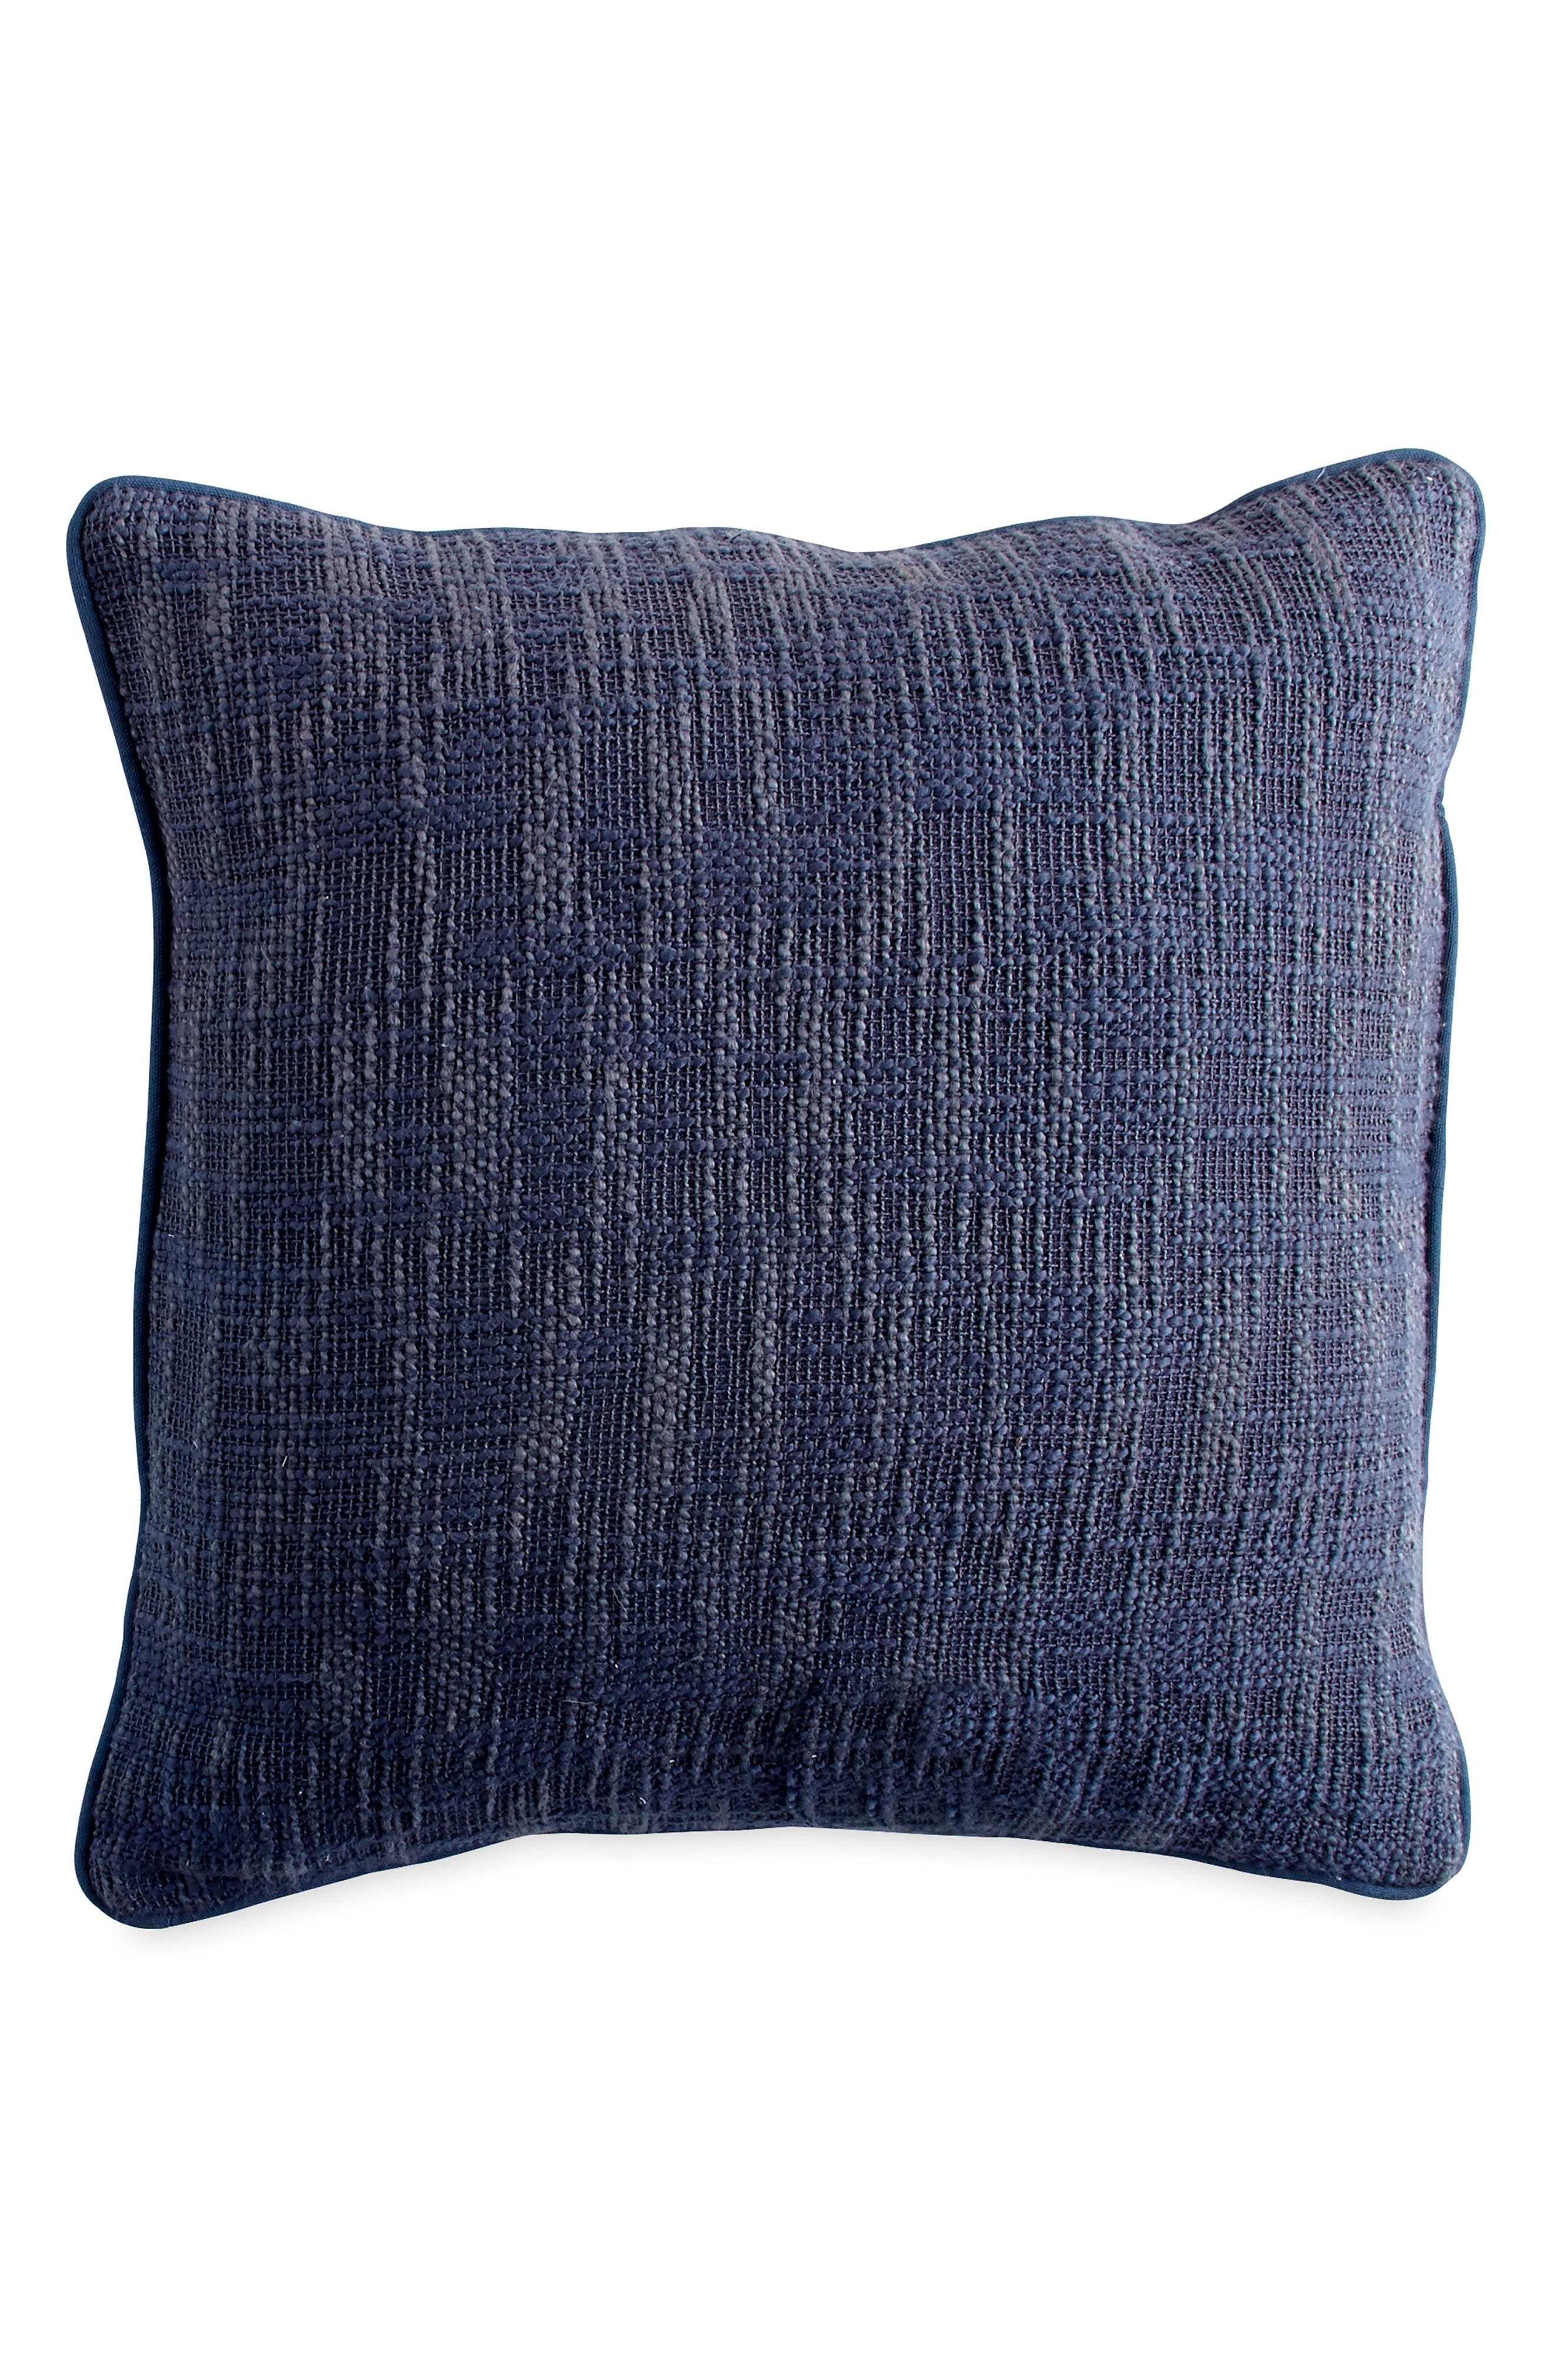 DKNY Woven Accent Pillow